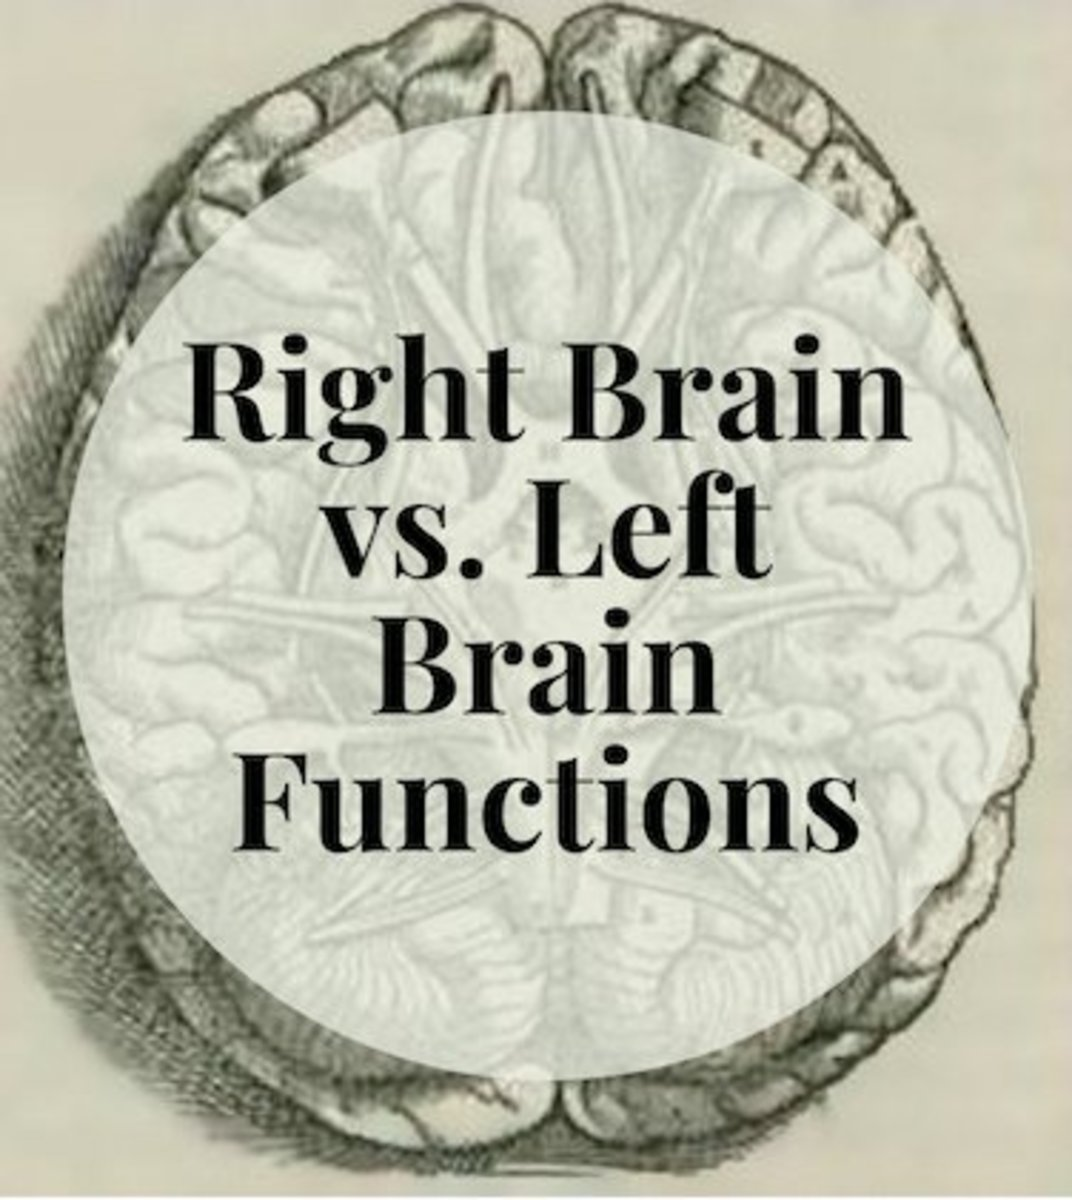 Right Brain vs. Left Brain Functions